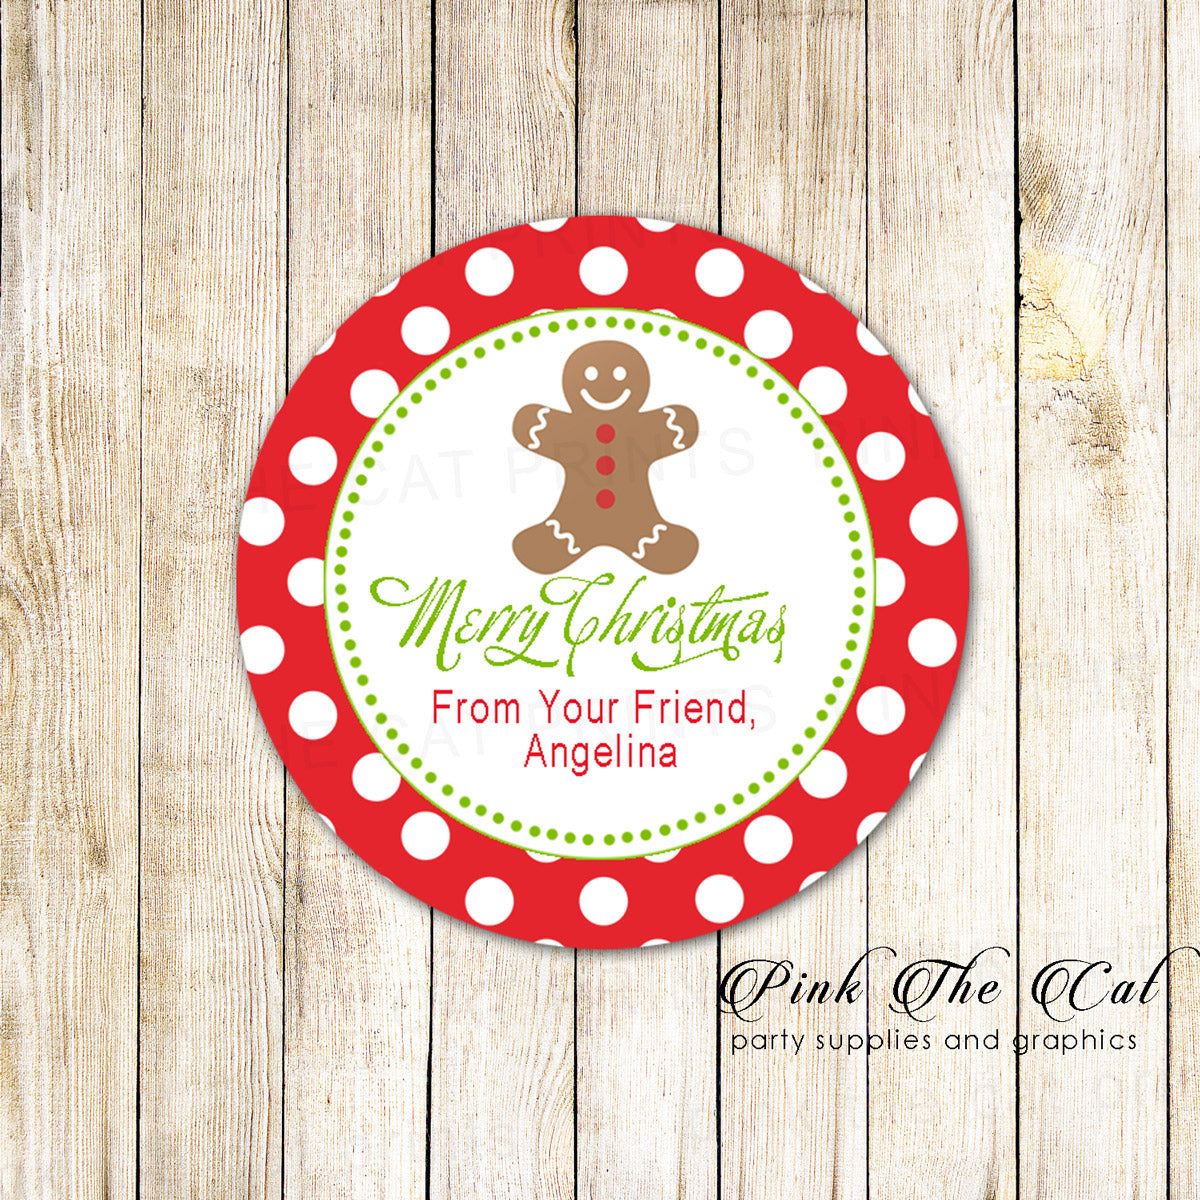 40 stickers gingerbread christmas favor label sticker tag pink the cat